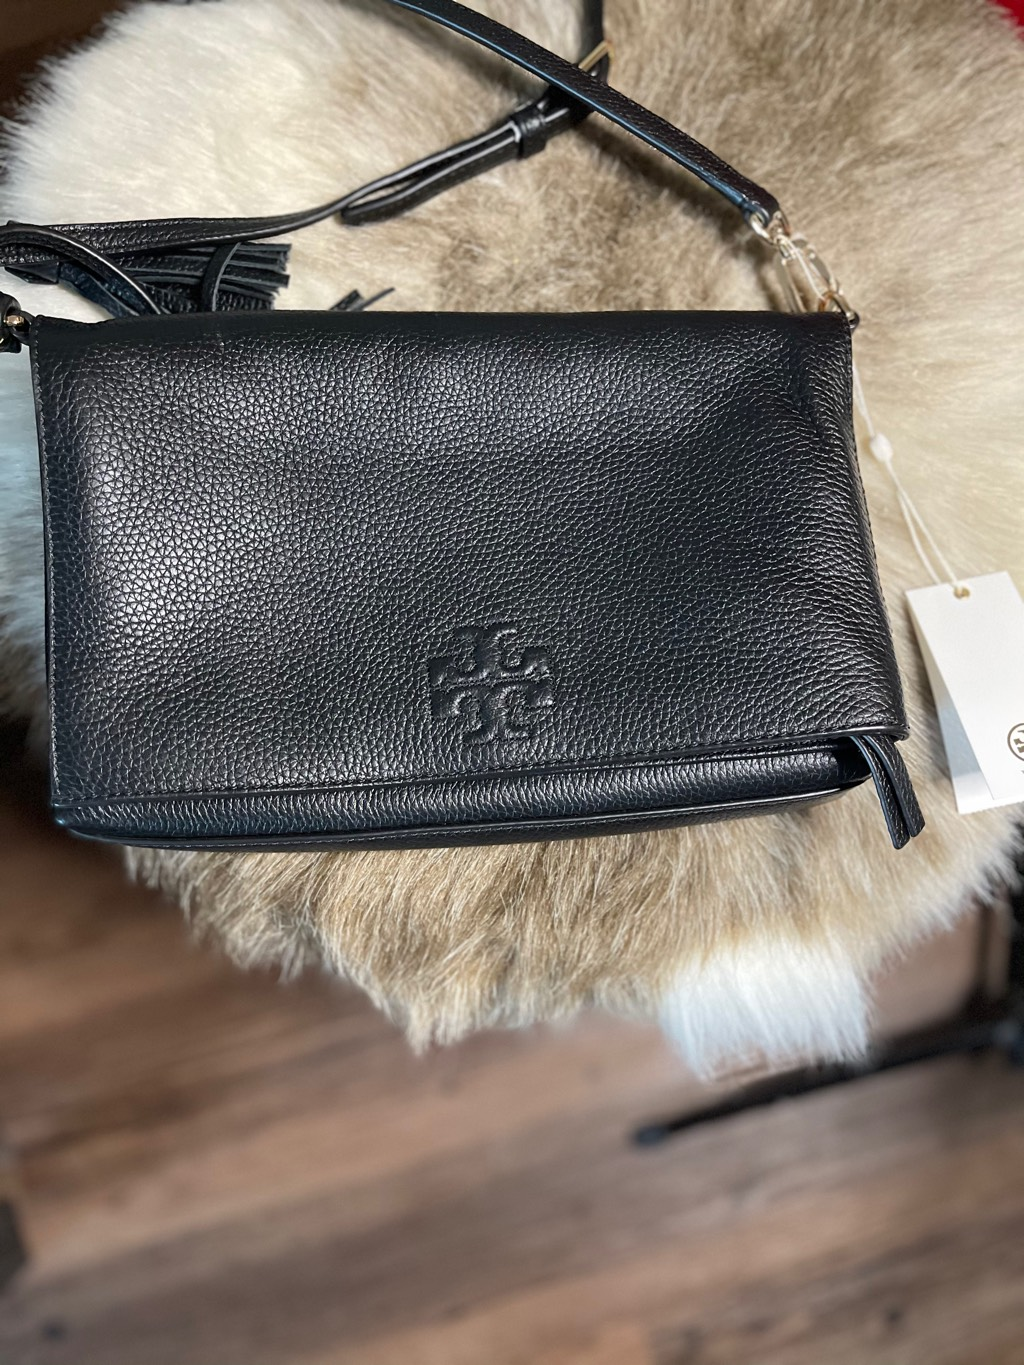 Tory Burch Thea Bag - NWT Other0